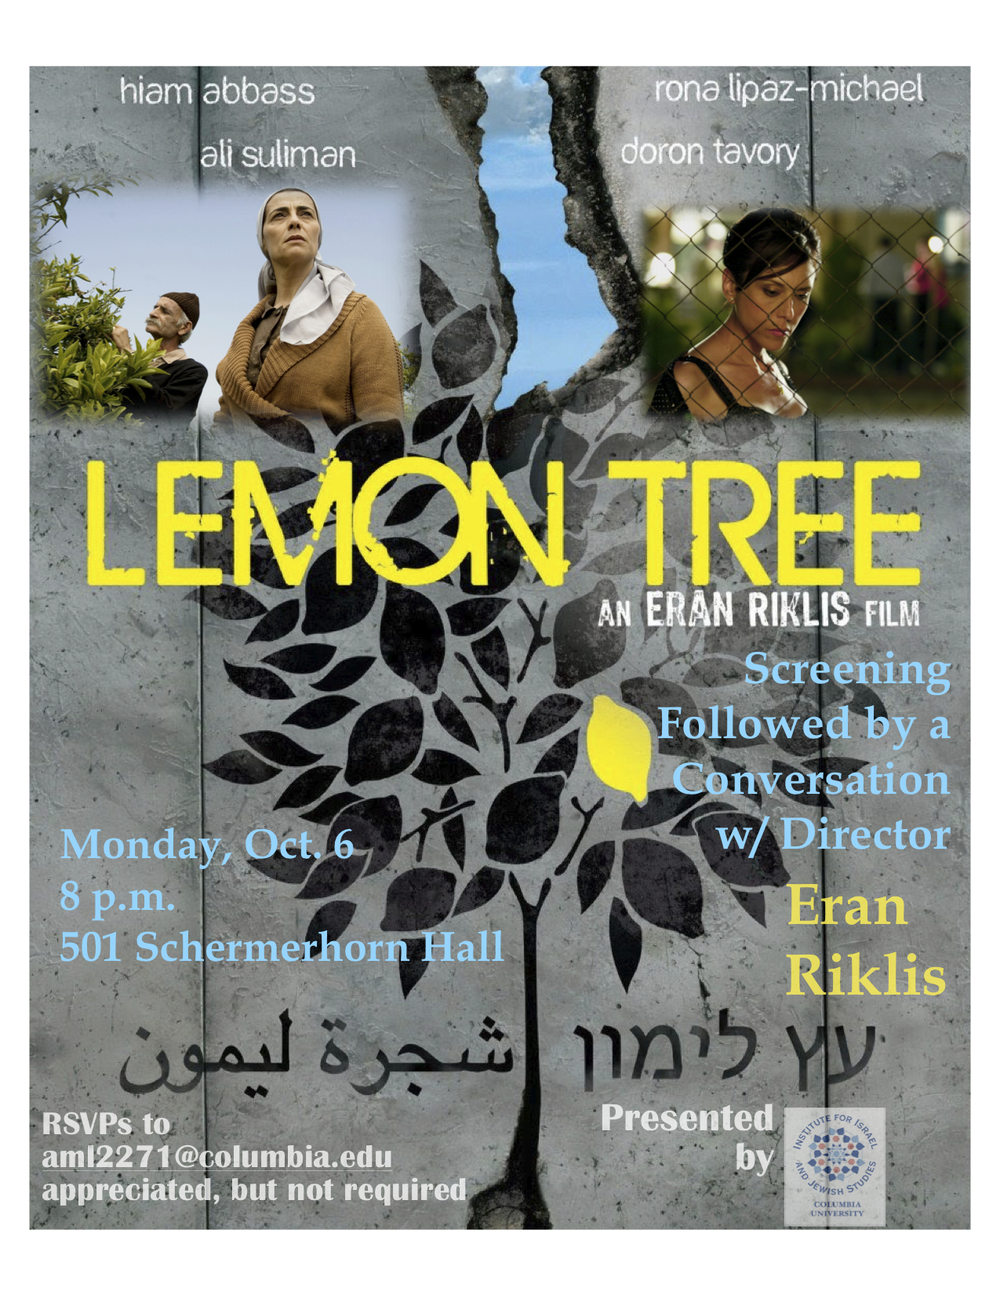 IIJS_LemonTree_Flier3_Print.jpg